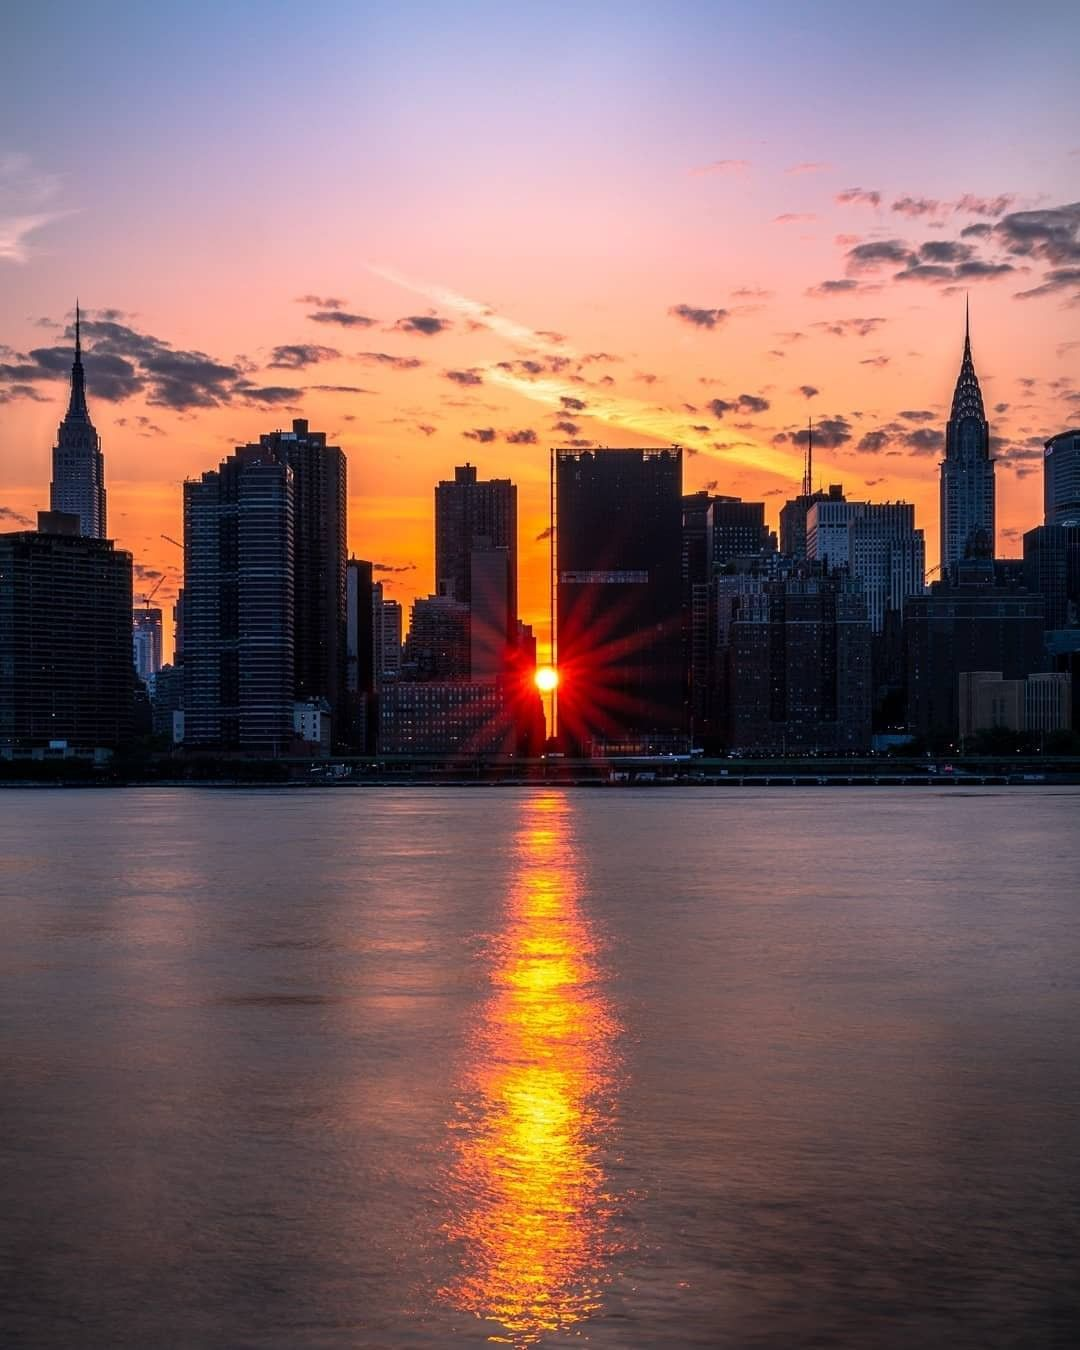 Nycgo On Instagram Link In Bio For The Best Spots To Observe Manhattanhenge Which Returns Tonight And Tomorrow J In 2021 Sunset City Sunrise City New York Pictures